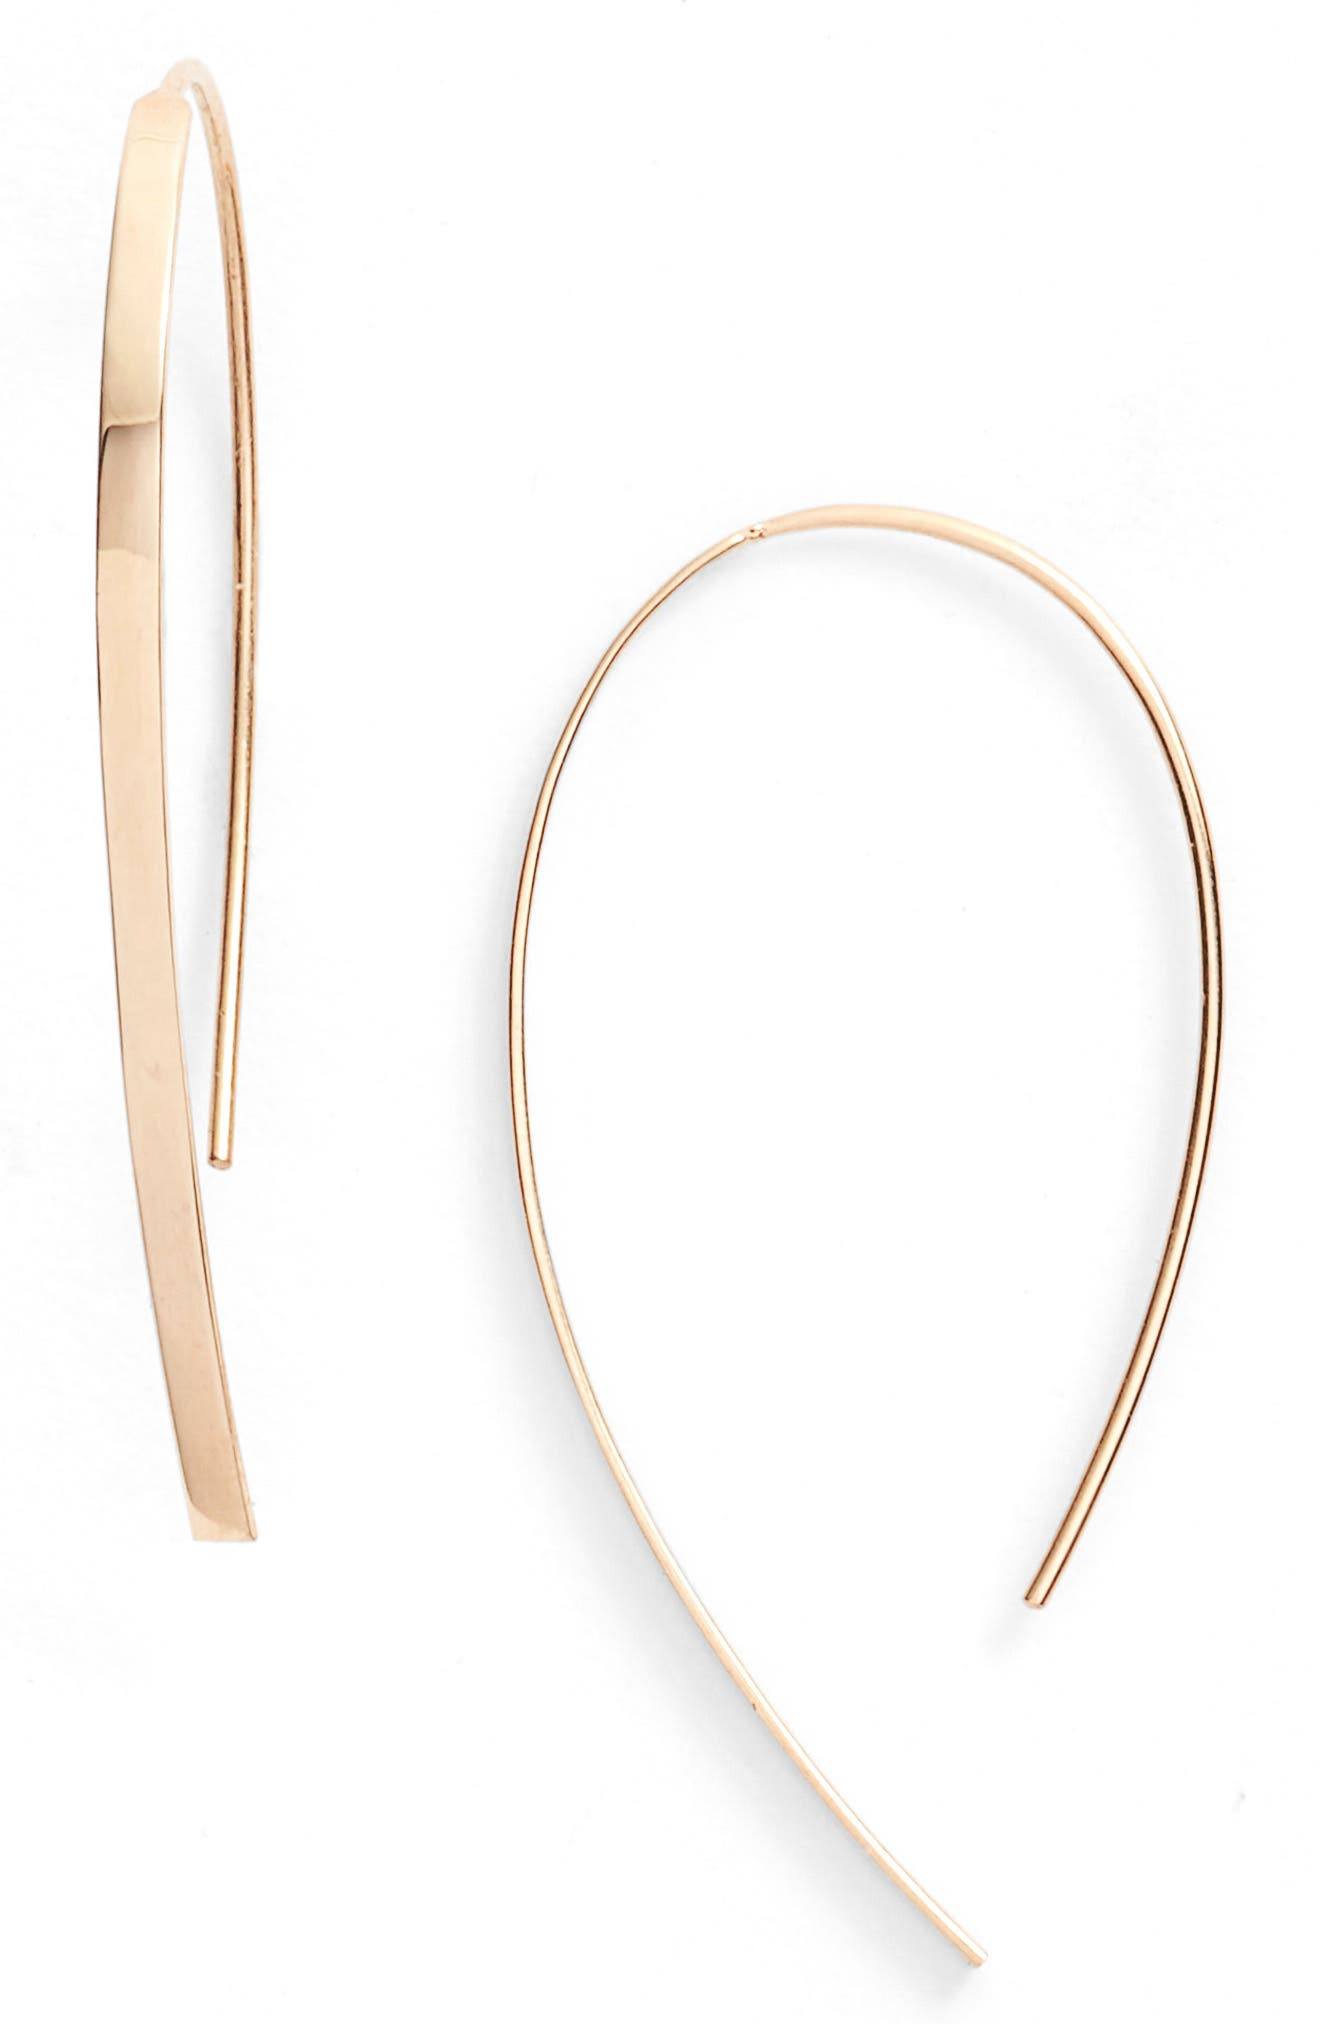 Mini Flat Hooked On Hoop Earrings,                         Main,                         color, YELLOW GOLD